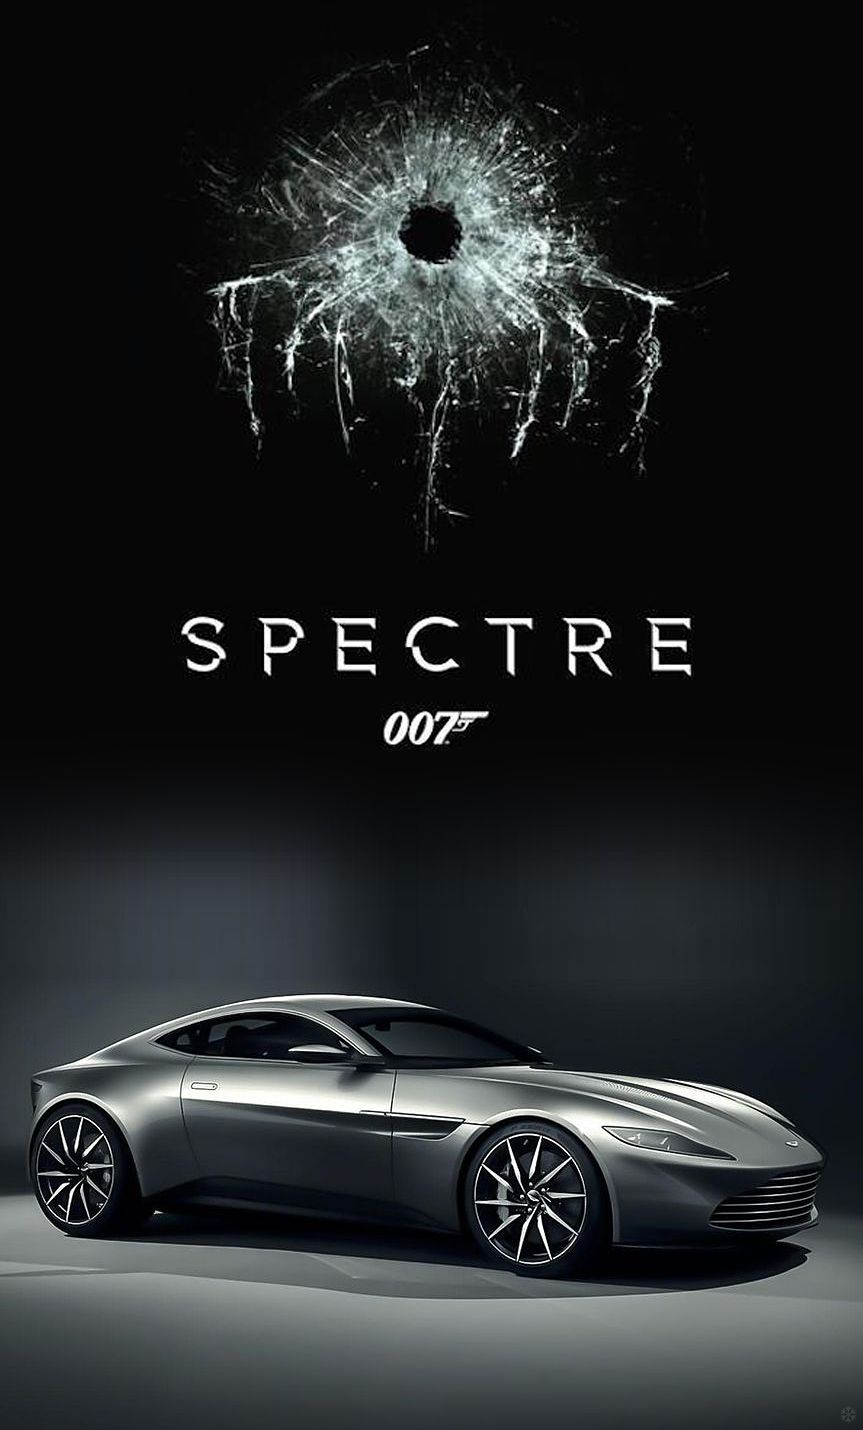 On November 6 2015 James Bond Will Return To Theaters In Spectre Director Sam Mendes Follow Up To The Colossal 2012 Bond Cars Cars Movie Aston Martin Db10